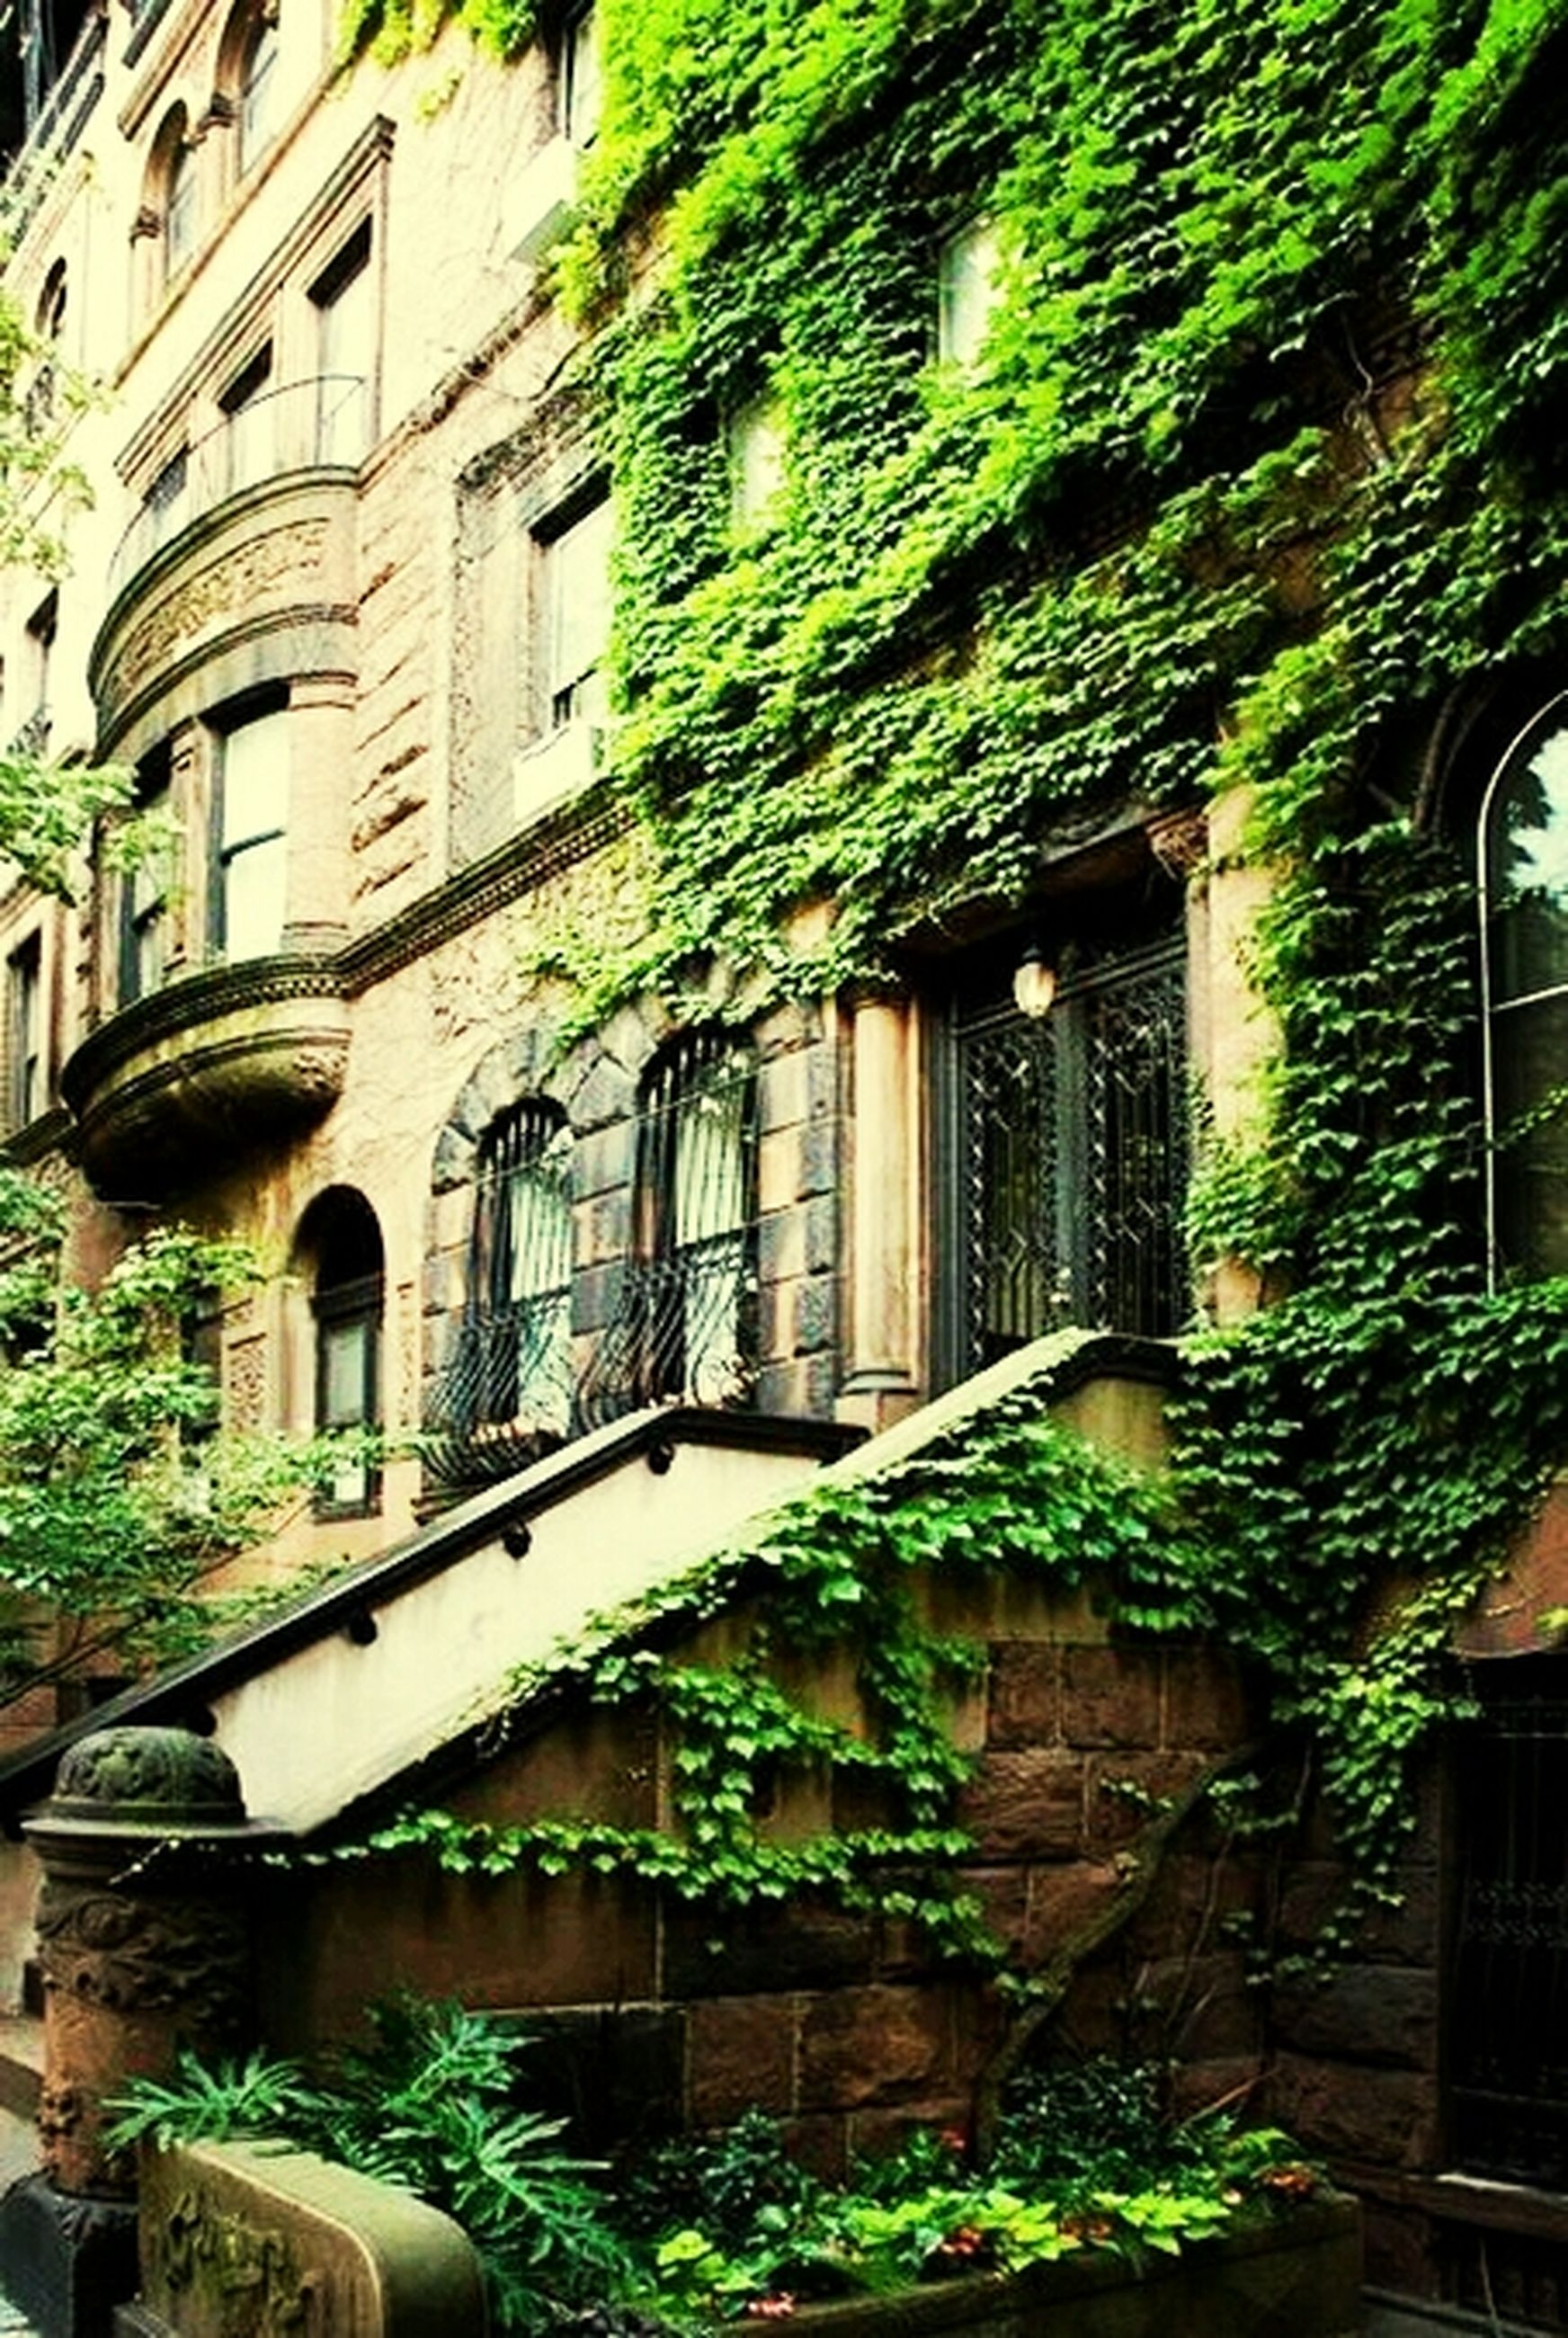 built structure, architecture, plant, building exterior, potted plant, growth, green color, house, leaf, residential building, residential structure, ivy, tree, front or back yard, building, window, creeper plant, nature, day, no people